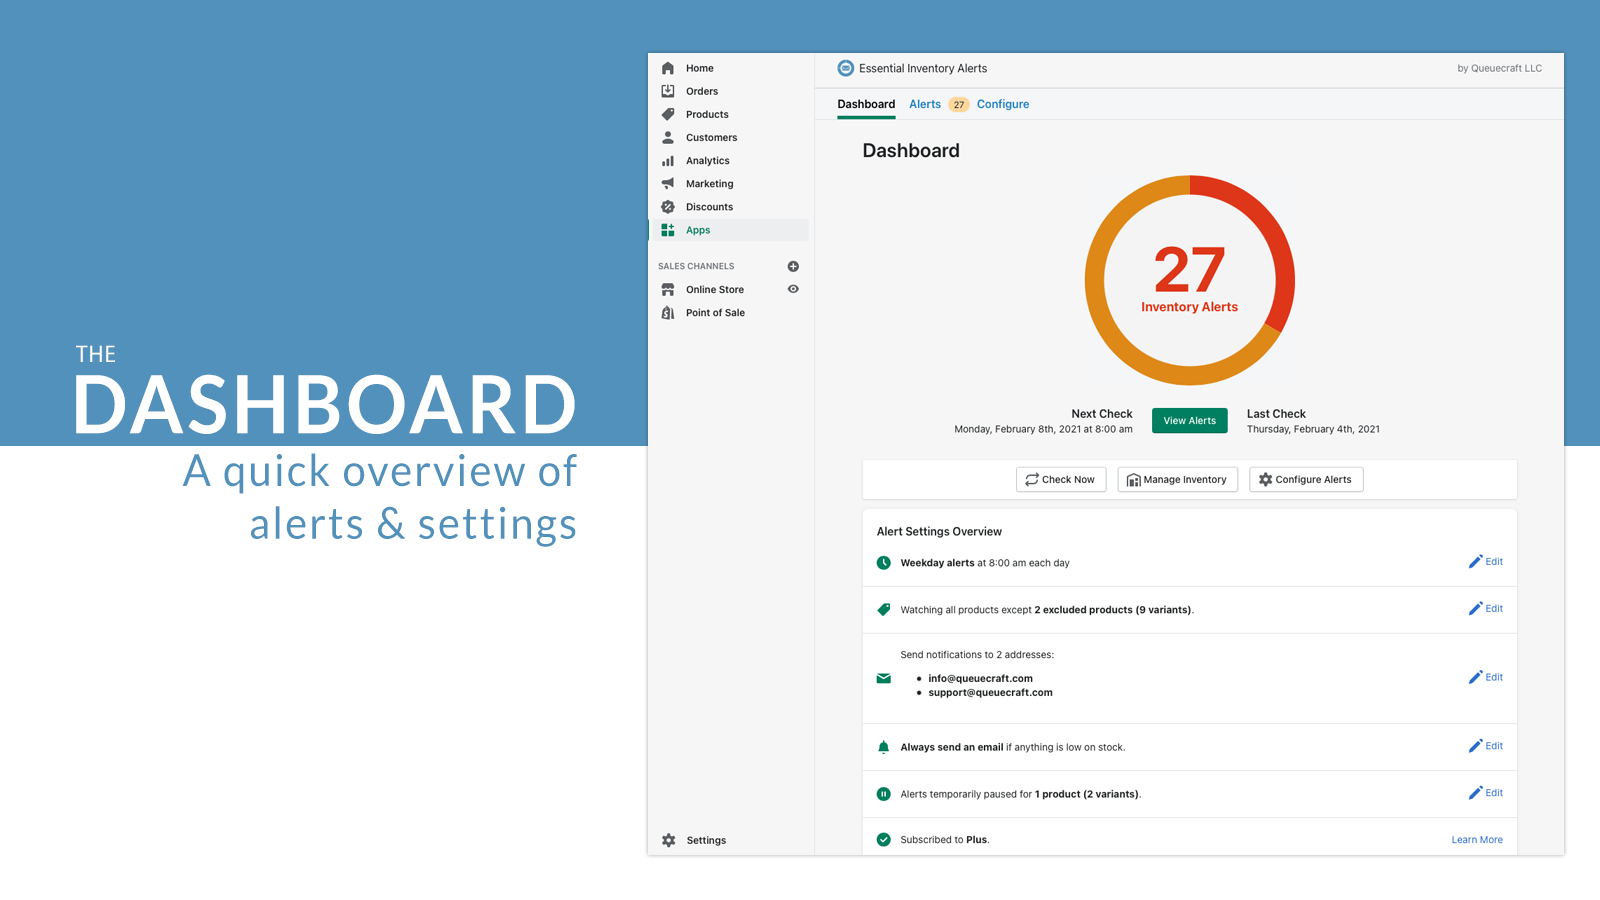 The dashboard is a quick overview of alerts and settings.